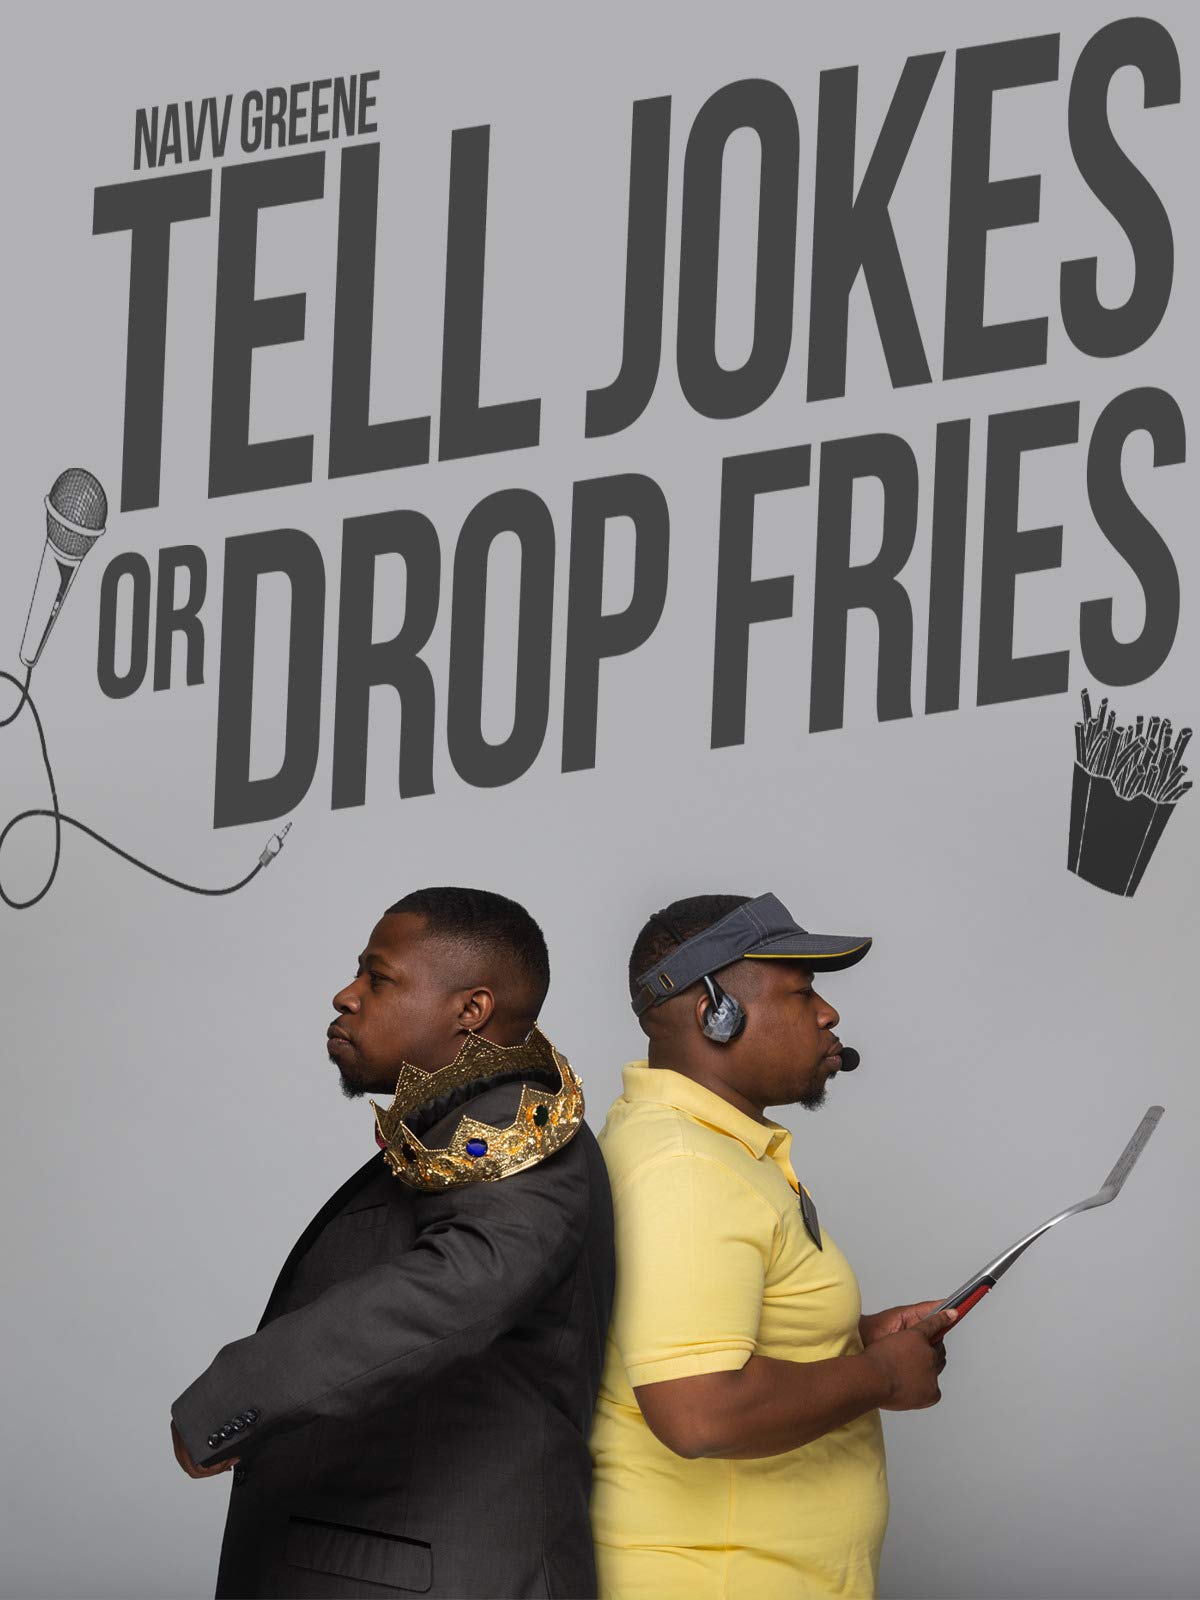 Navv Greene: Tell Jokes or Drop Fries